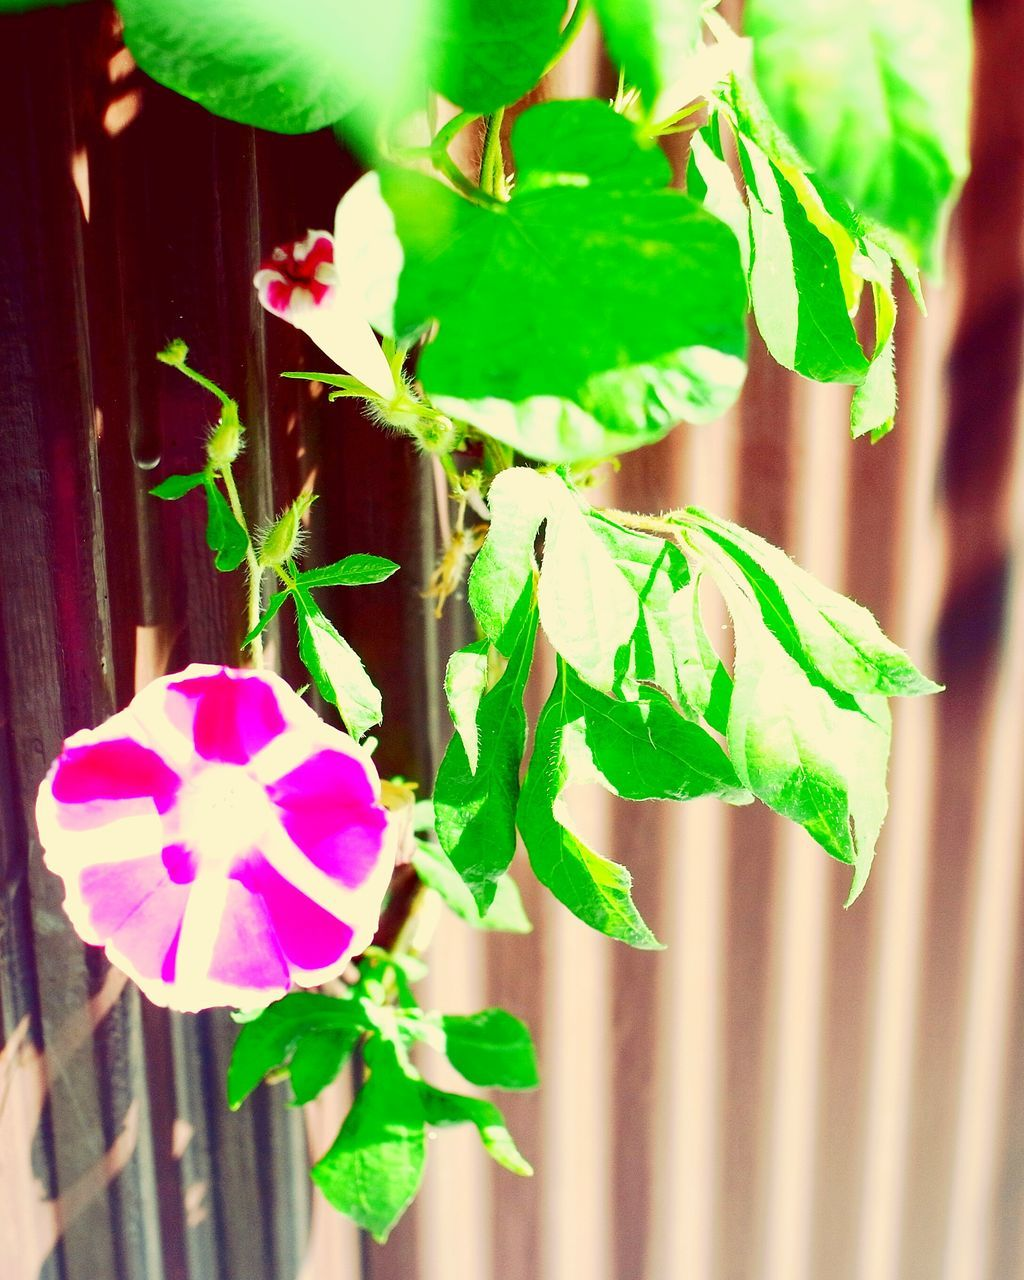 growth, plant, green color, leaf, fragility, no people, nature, day, freshness, flower, close-up, outdoors, beauty in nature, flower head